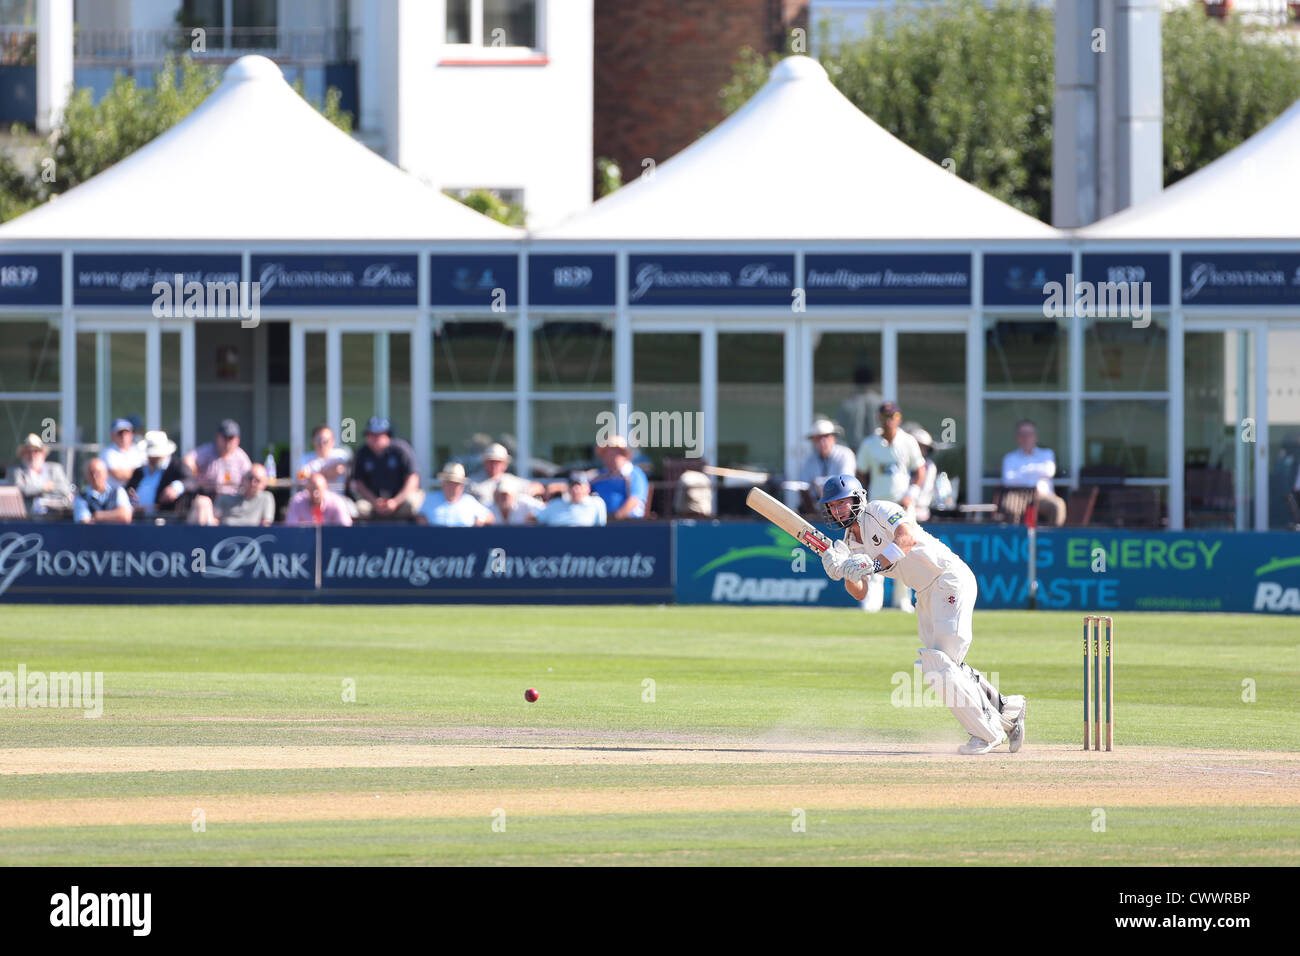 Batsman playing a shot at the County Ground in Hove. - Stock Image